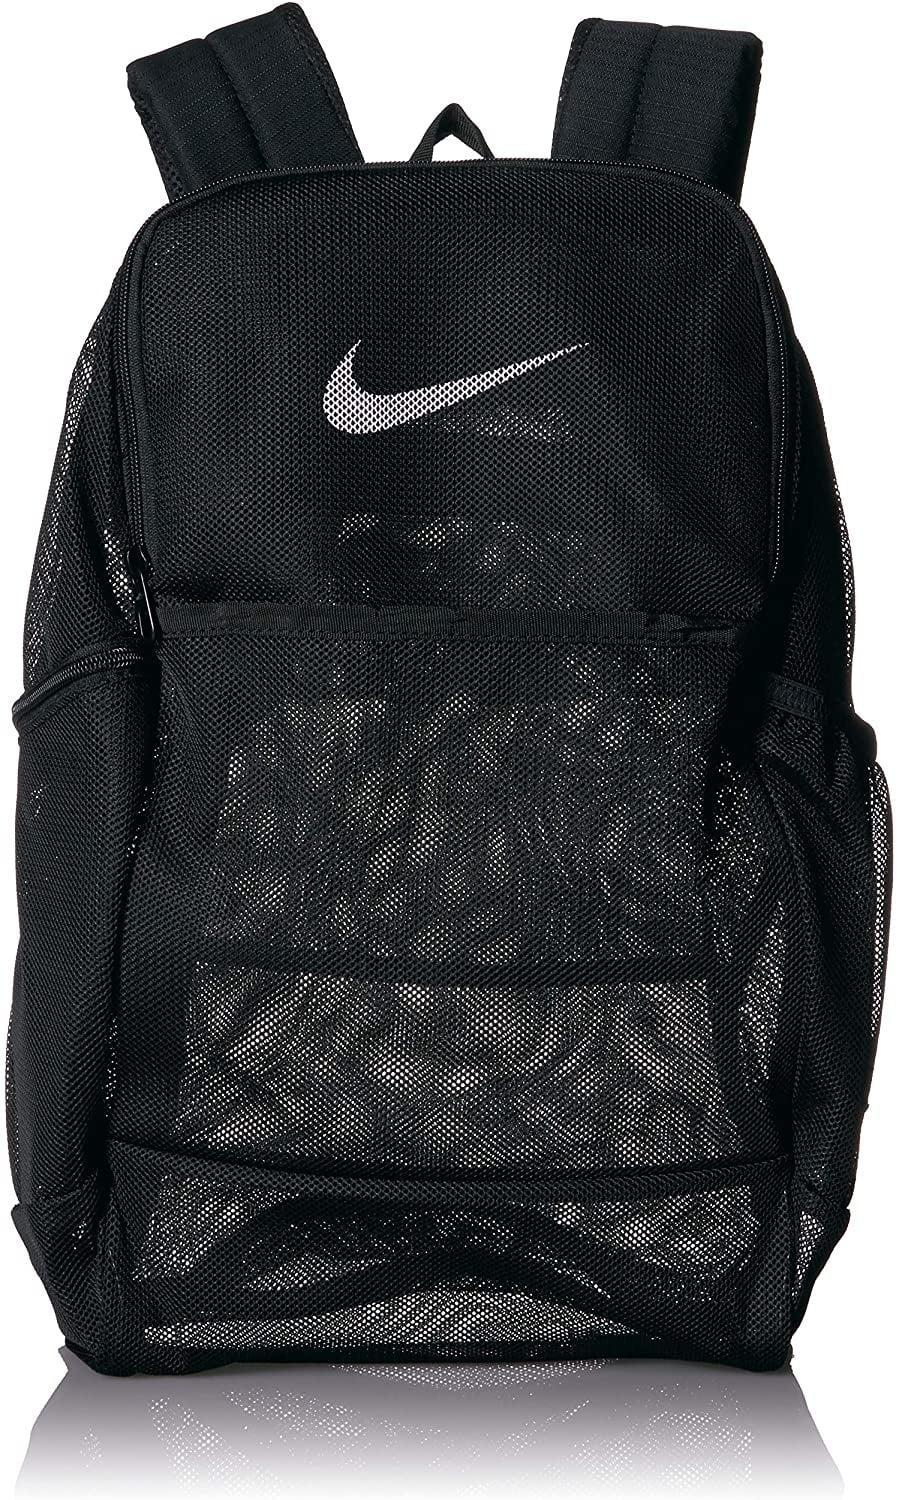 <p>Make sure your kid is prepared for gym class with a durable bag. The <span>Nike Unisex-Adult Brasilia Mesh Backpack</span> ($59) is the perfect size for an extra pair of clothes, sneakers, water bottles and more. </p>